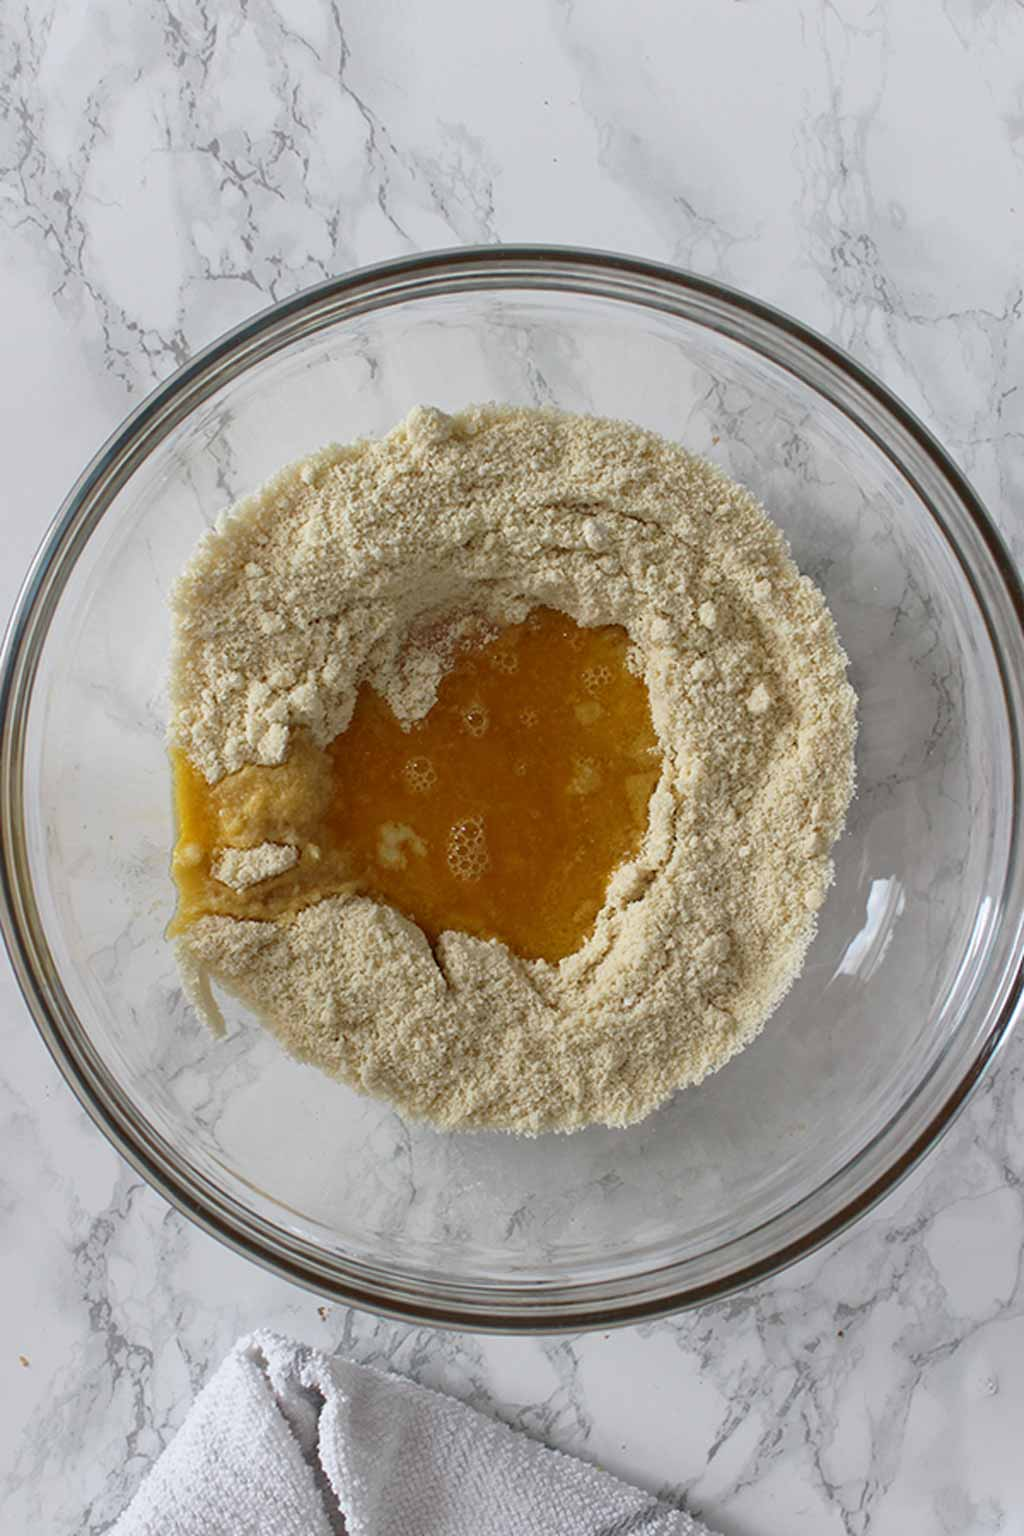 Bowl Containing Almond Flour And Melted Butter